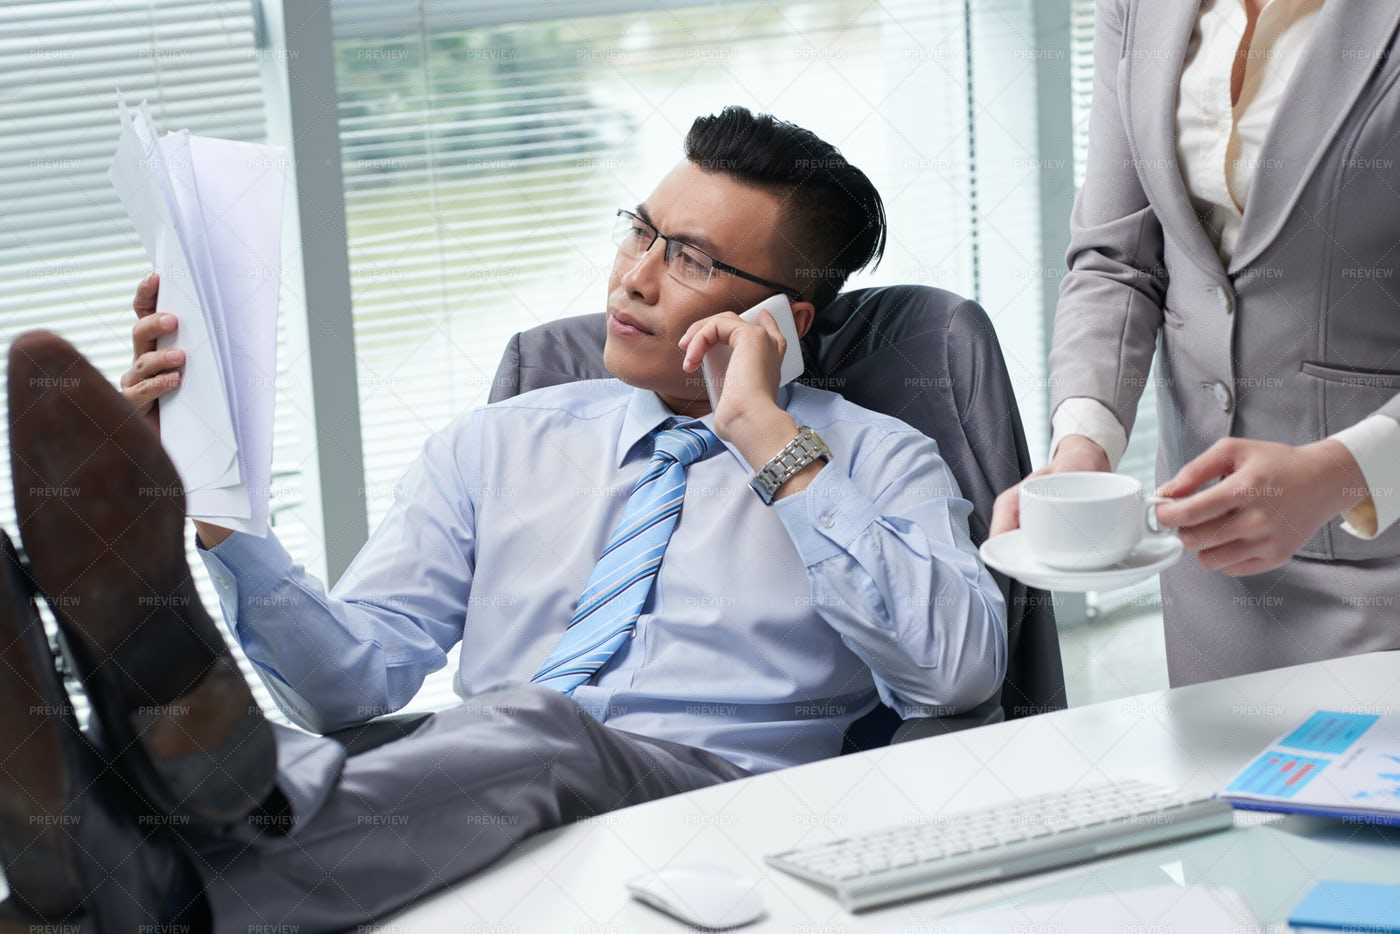 Busy With Work: Stock Photos